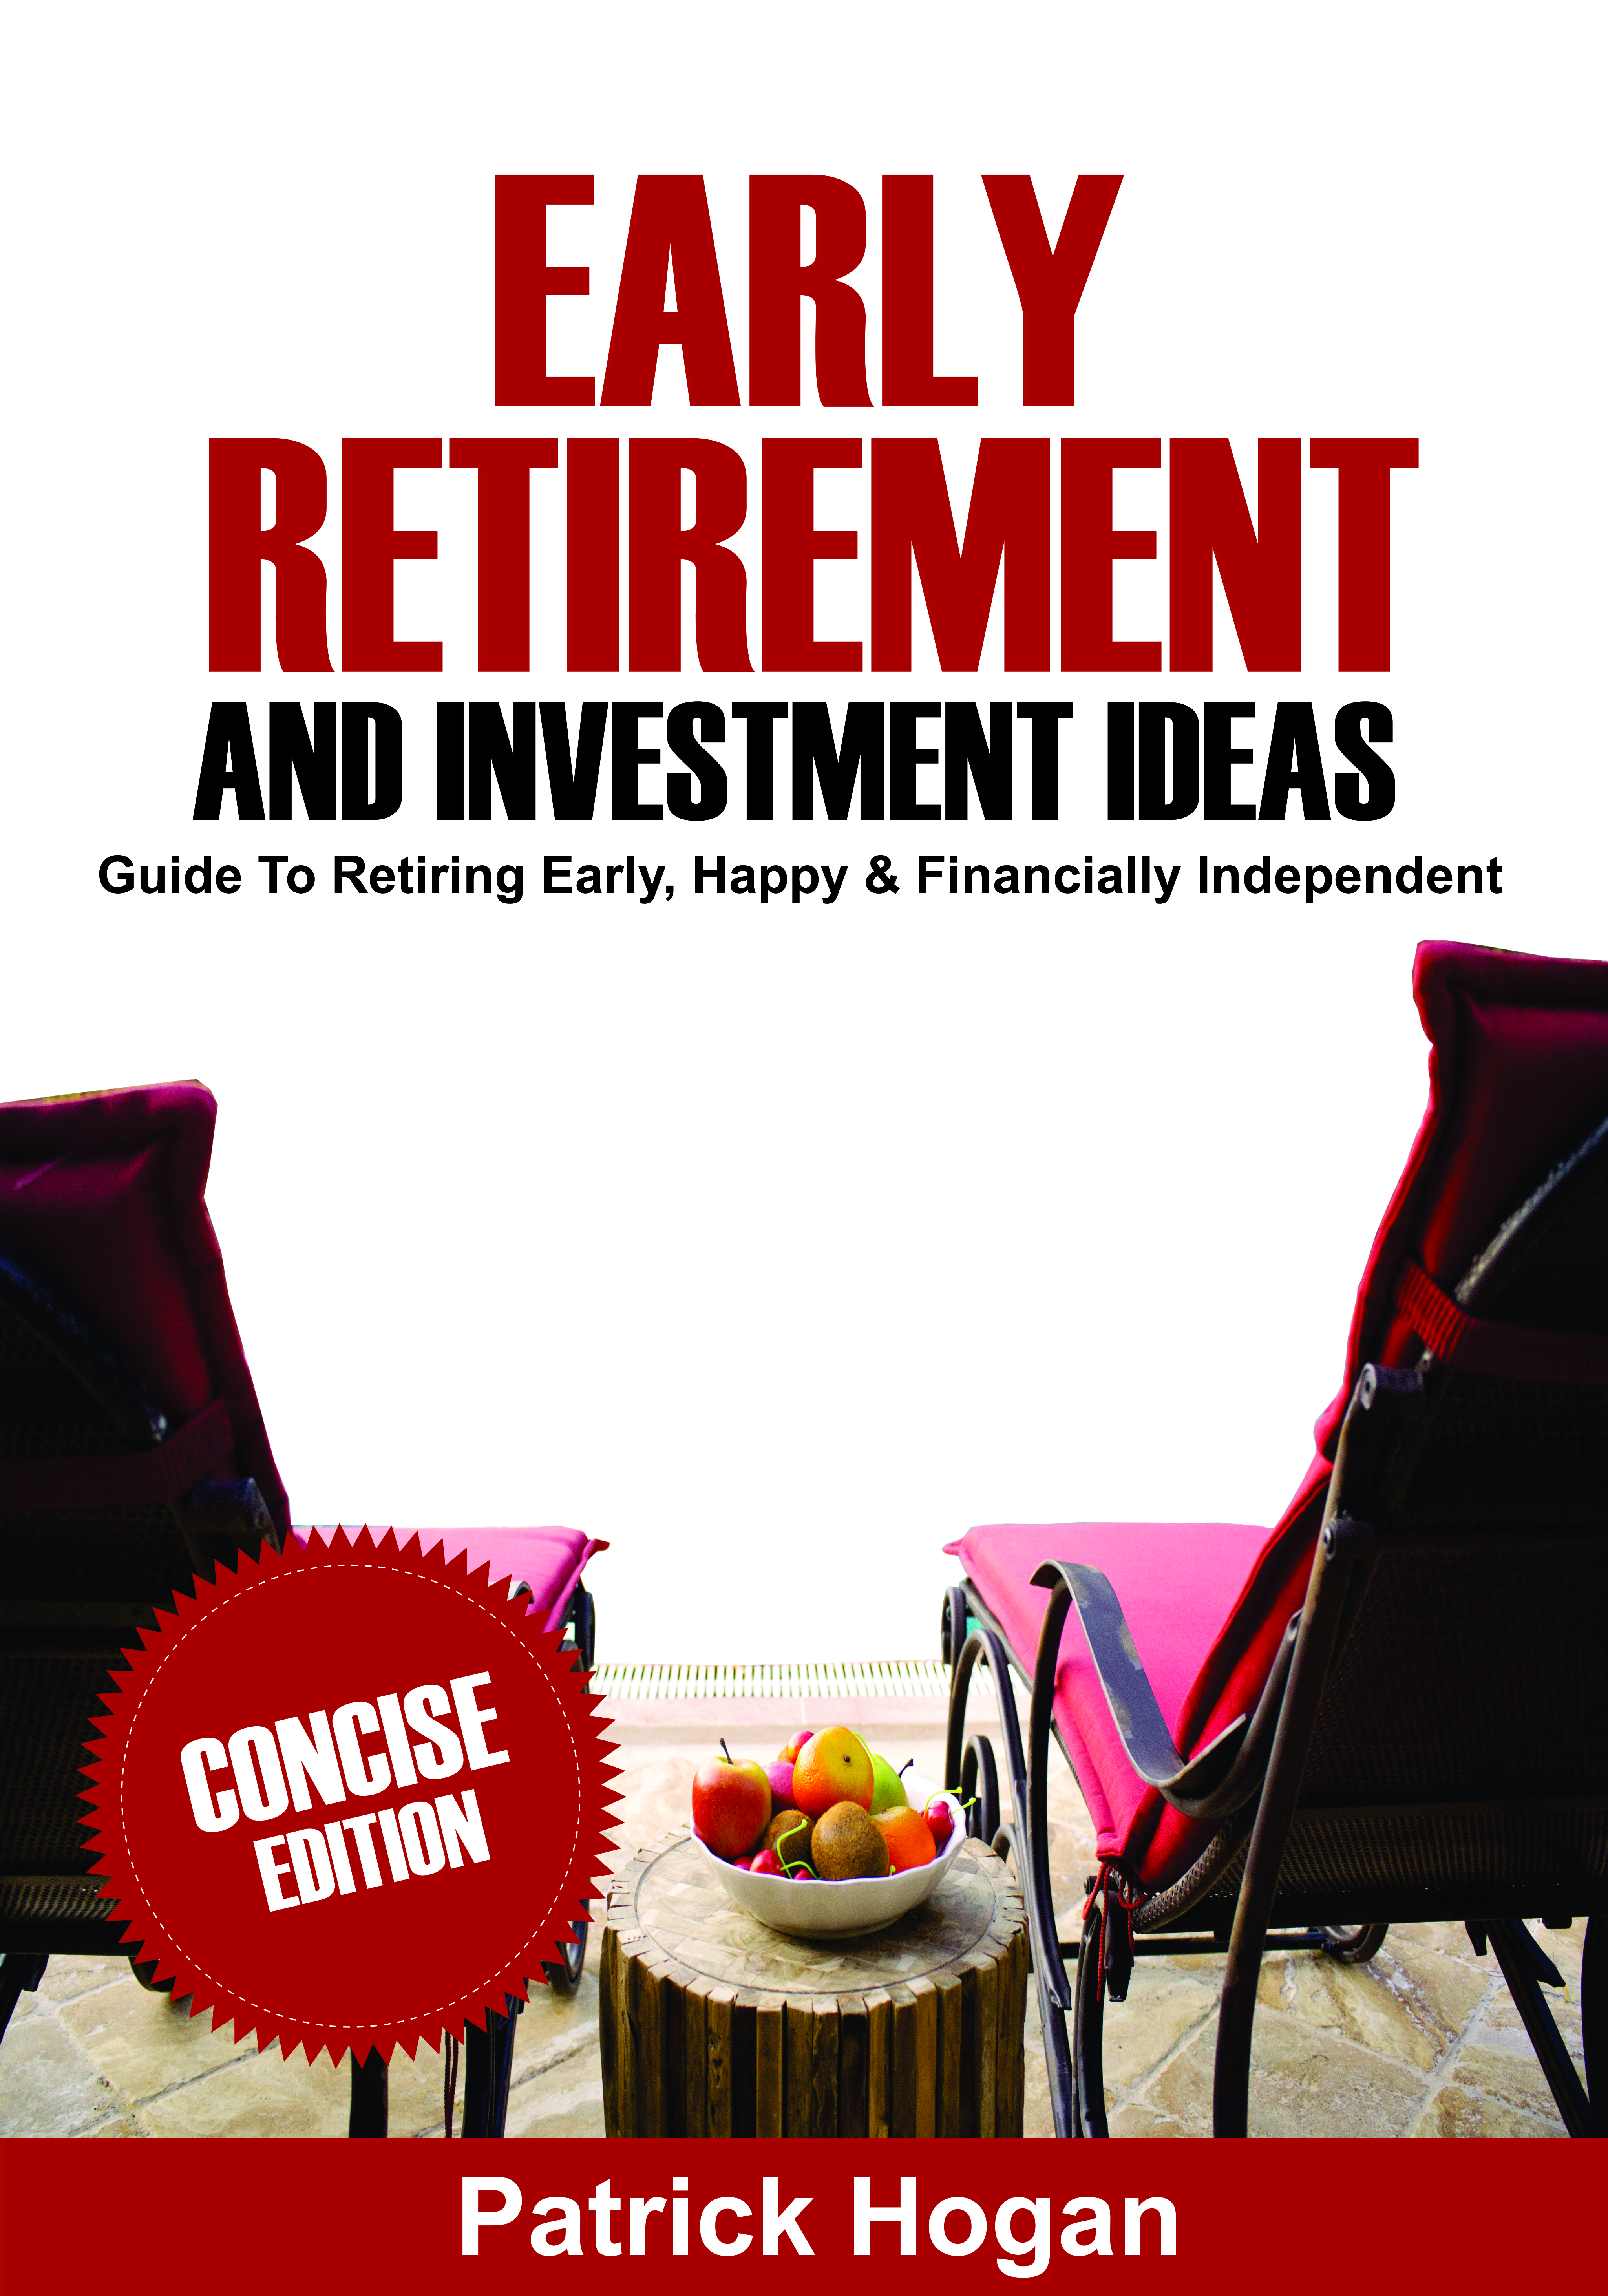 Early retirement plan & investment ideas: guide to retiring early, happy and financially independent